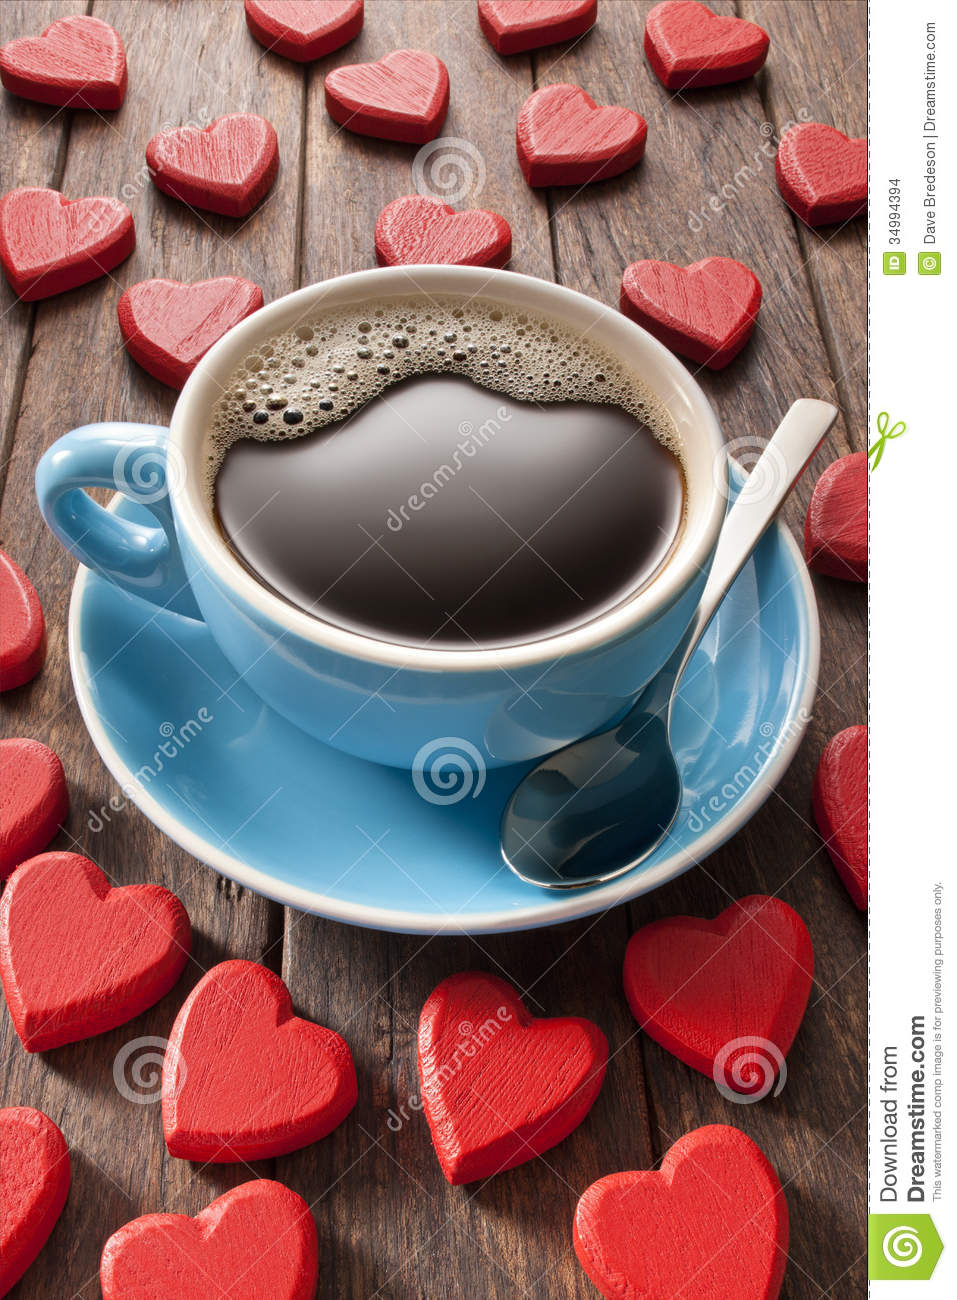 Image Result For What Is The Caffeine Content Of A Cup Of Coffee